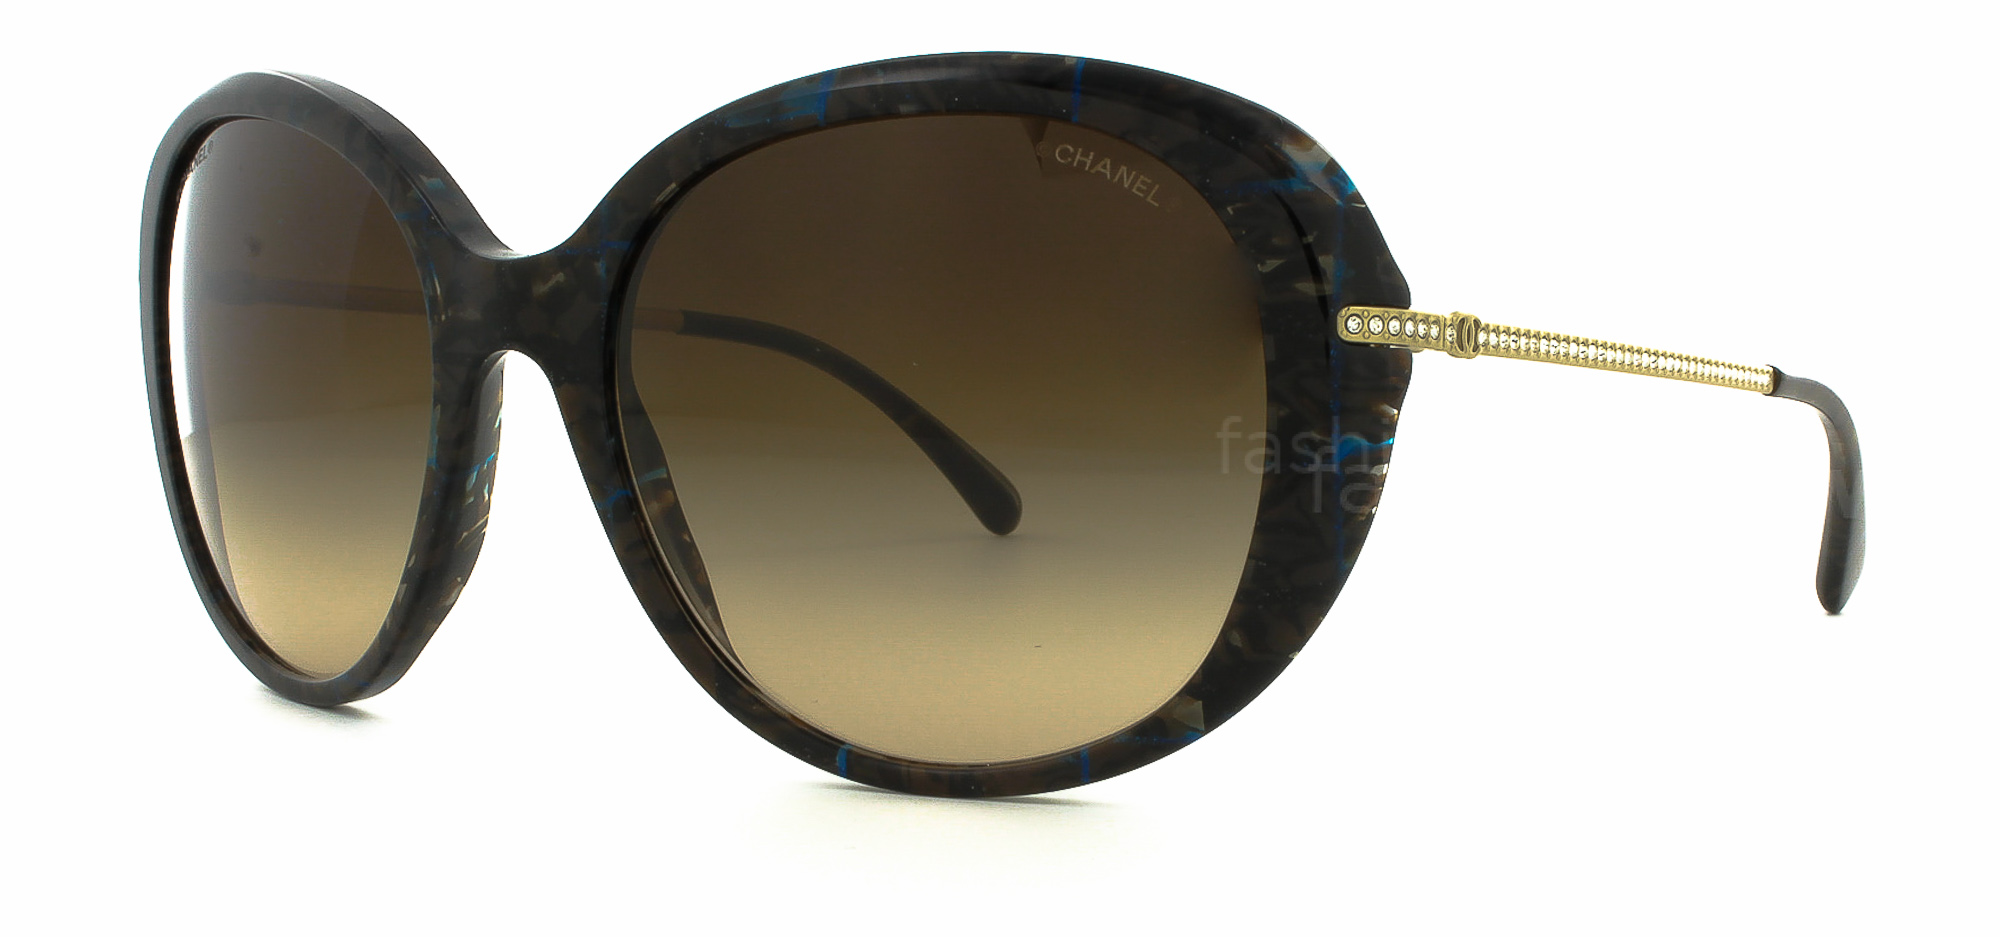 Chanel 5293b sunglasses for Decor my eyes